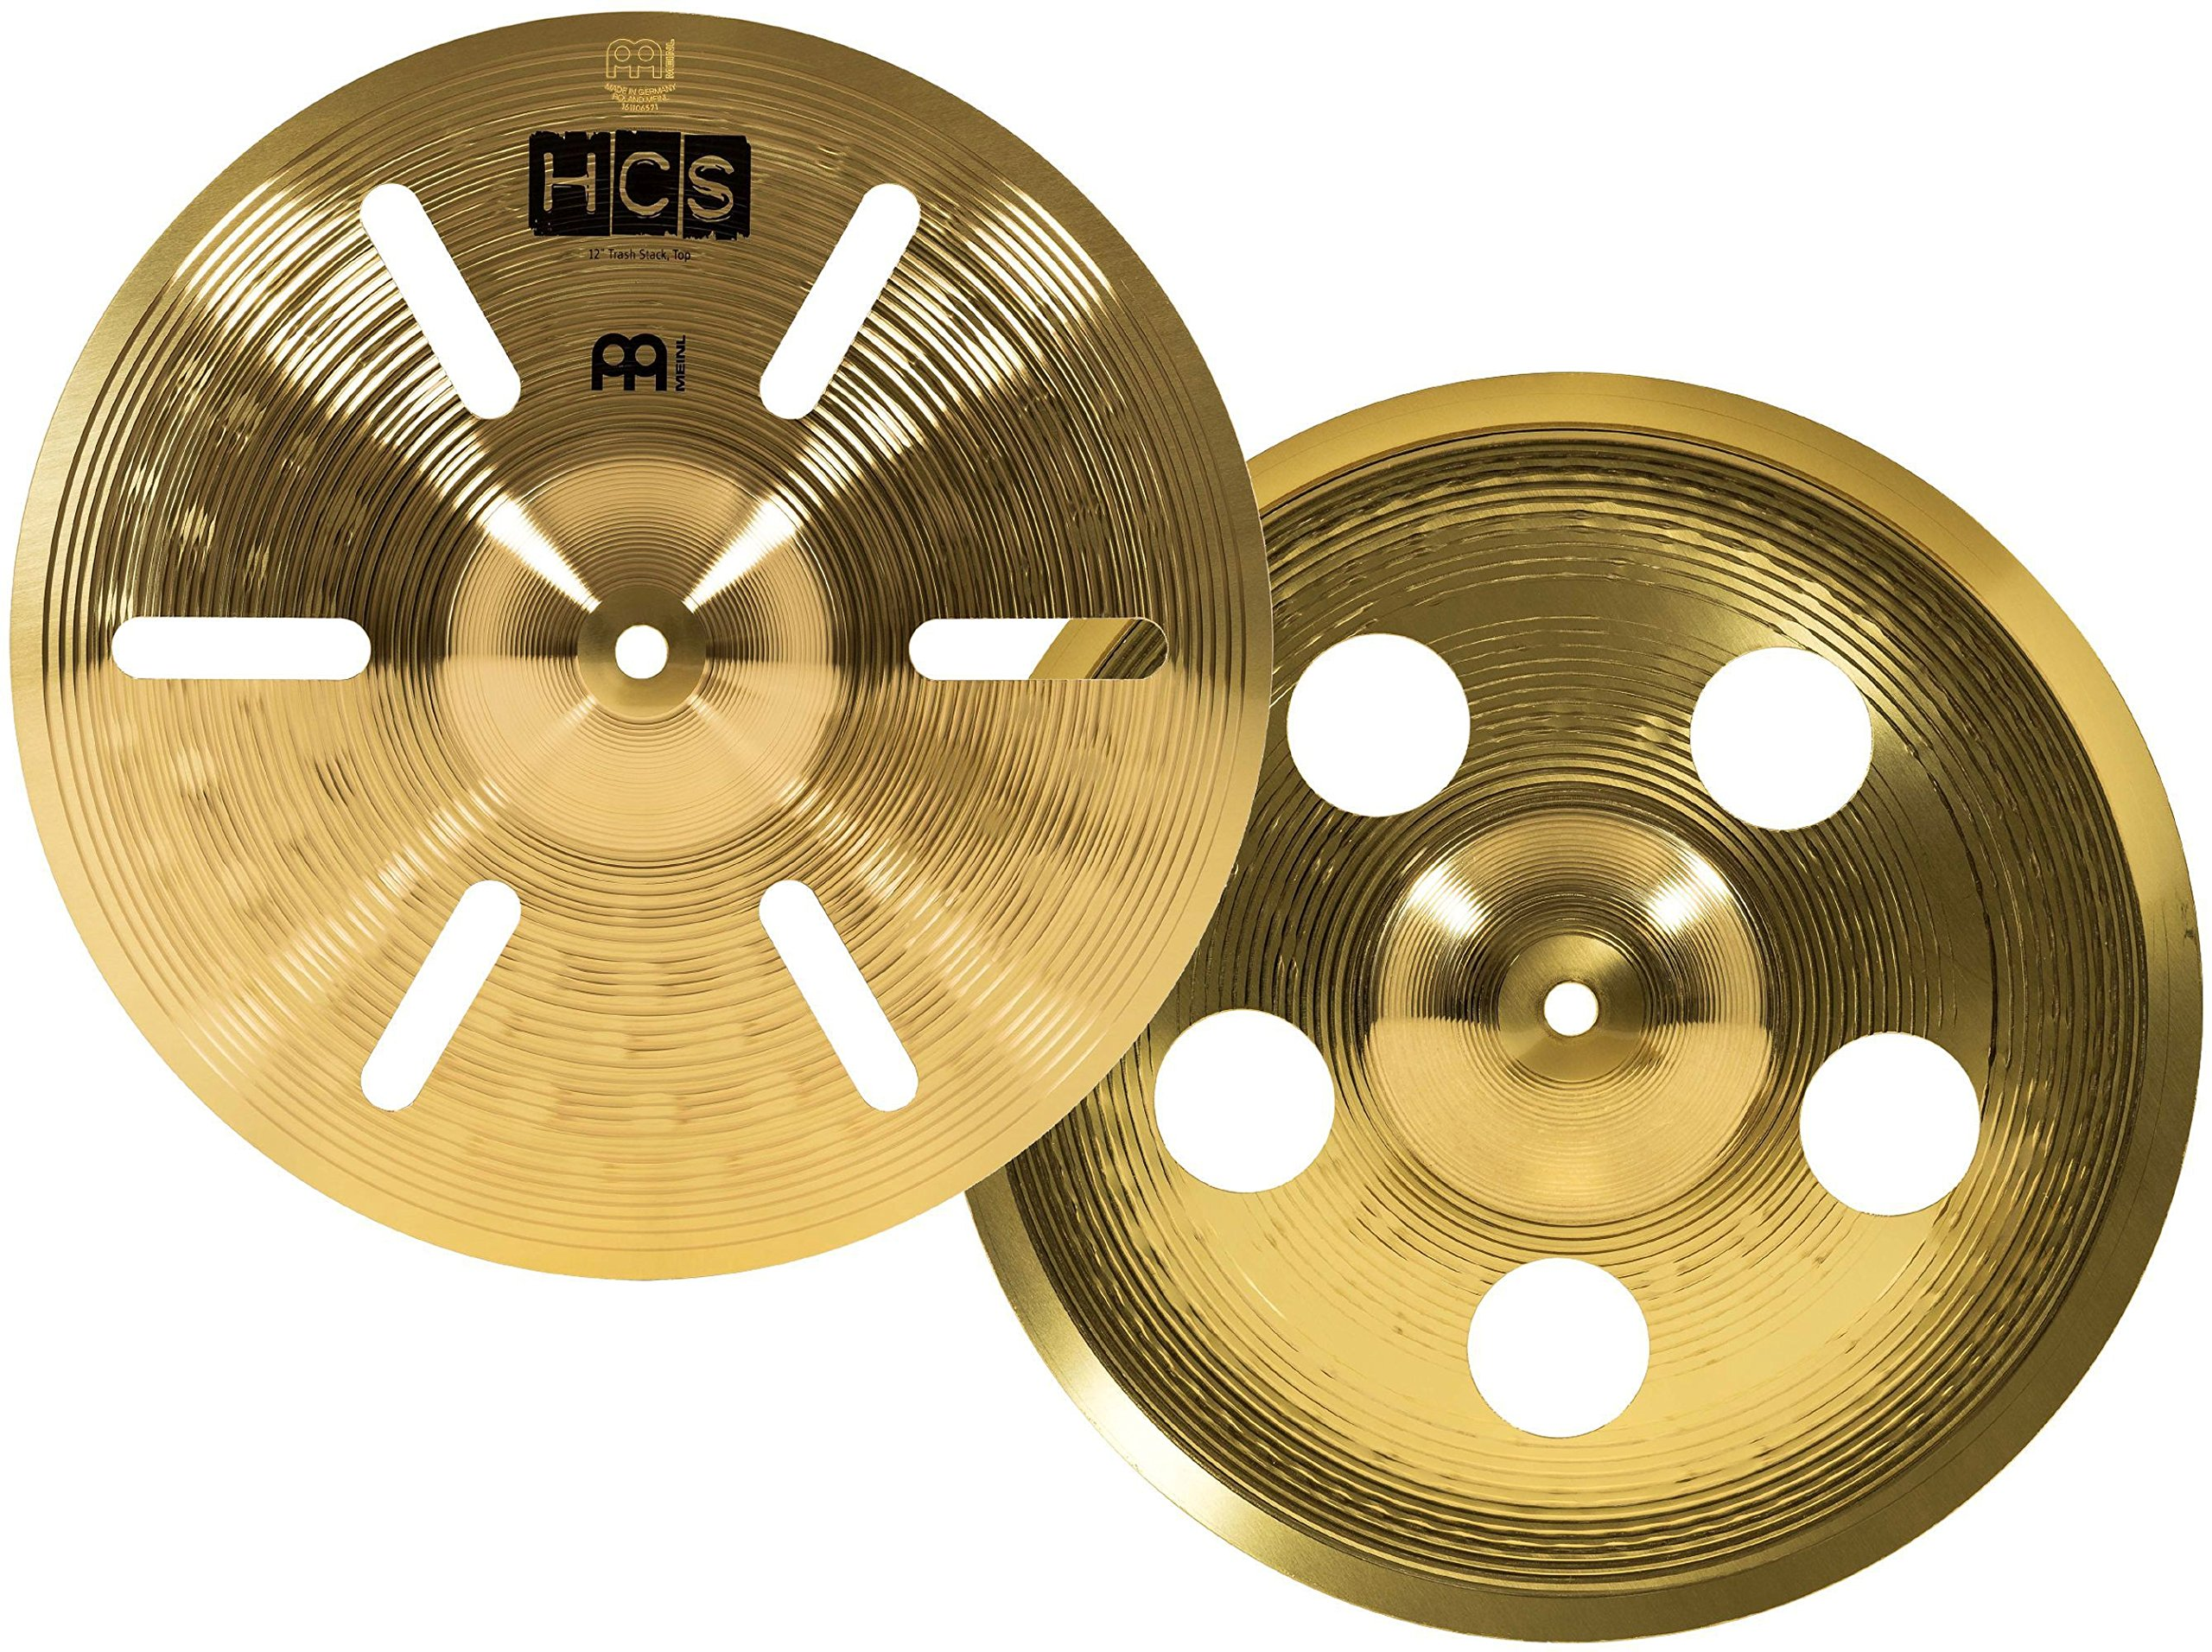 Meinl Cymbals HCS12TRS 12'' HCS Brass Trash Stack Cymbal Pair for Drum Set (VIDEO) by Meinl Cymbals